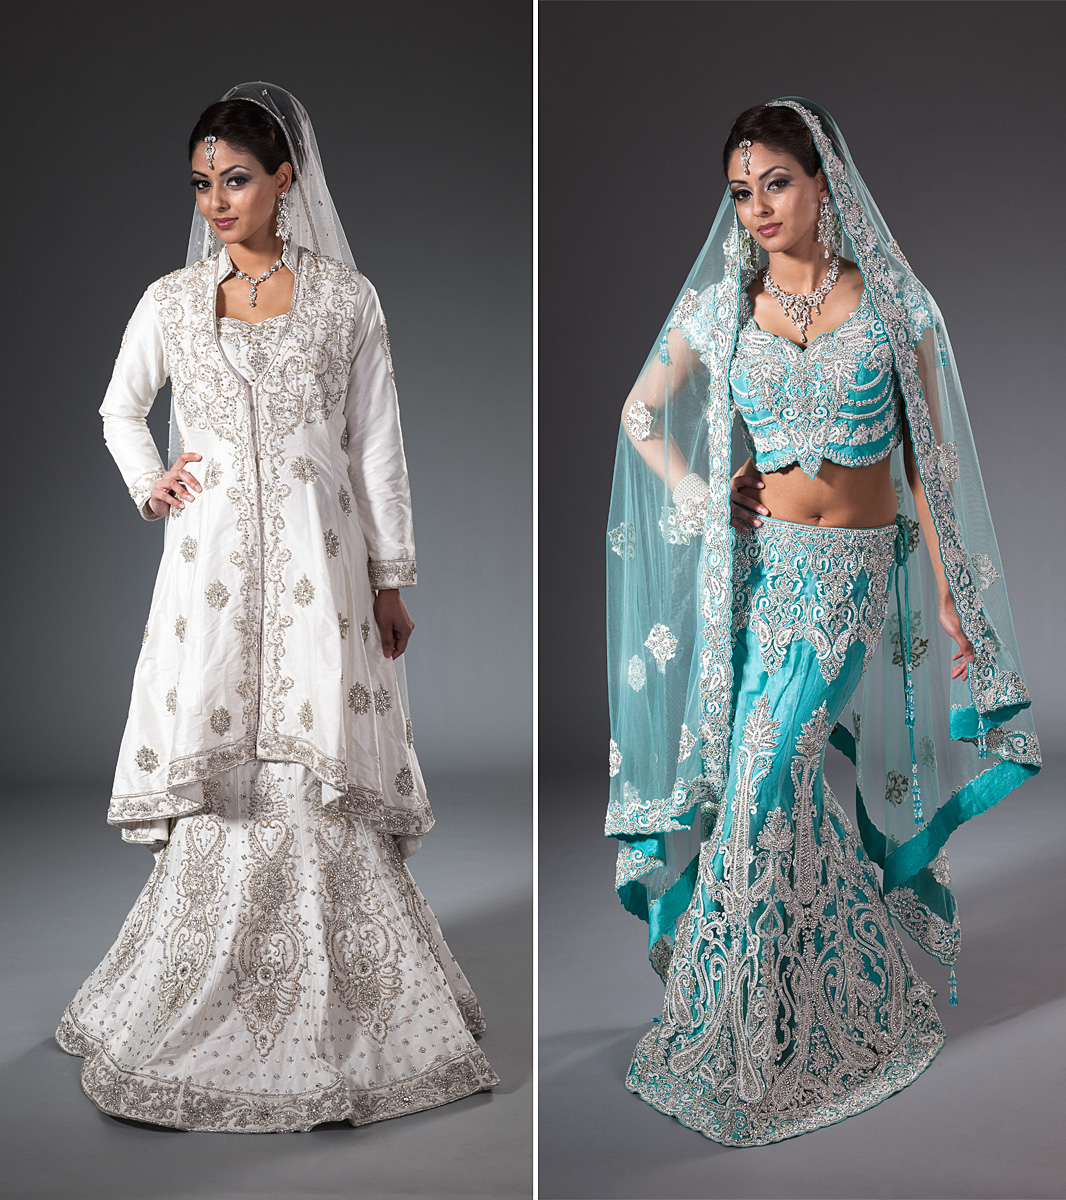 Awesome Asian Bridal Gown Gallery - Wedding Ideas - memiocall.com